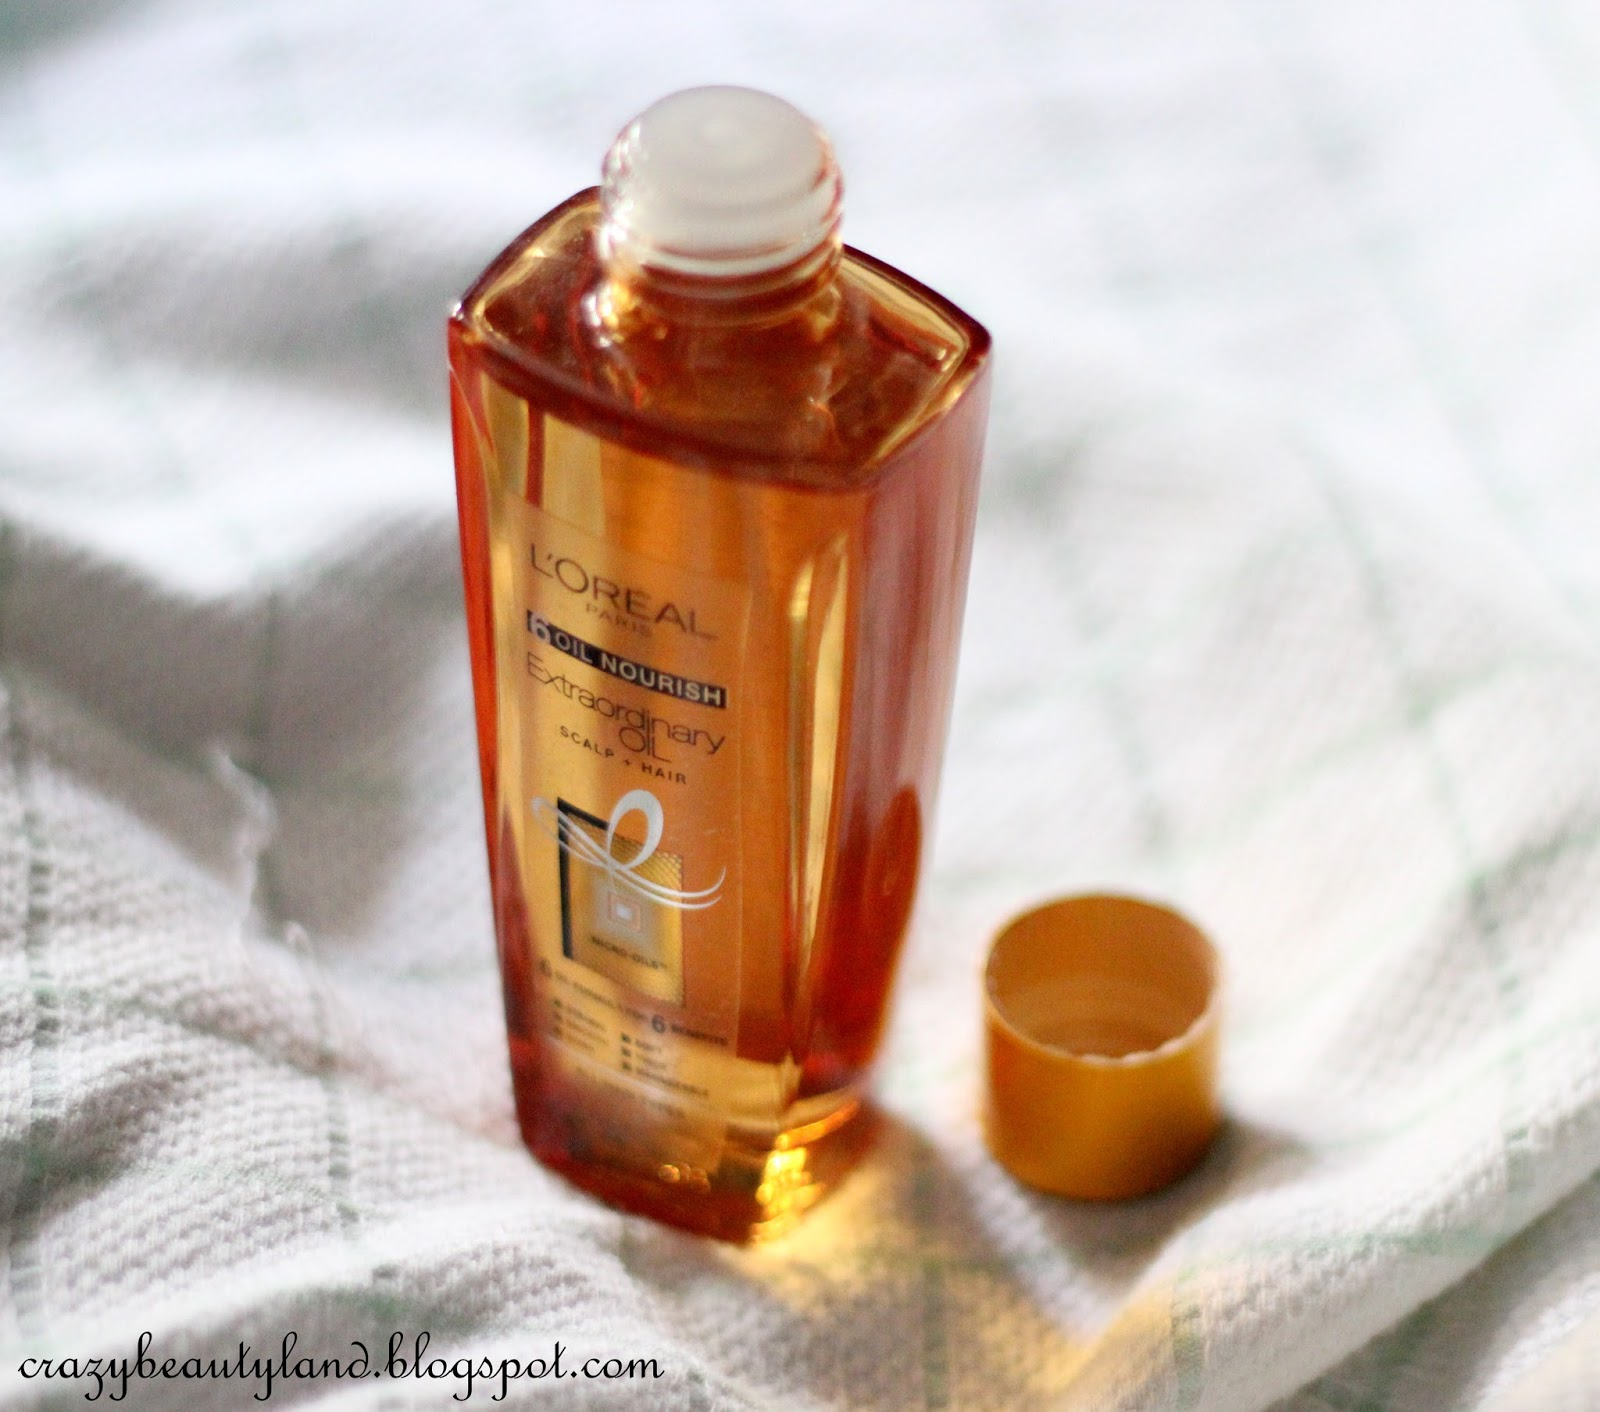 L'Oreal 6 Oil Nourish Extraordinary Oil Scalp+Hair in India - Review,photos,price, how to use it, thin oil, dry oil, dry hair oil,  oil treatment for hair, hair oil, argan oil reviews, hair care oil